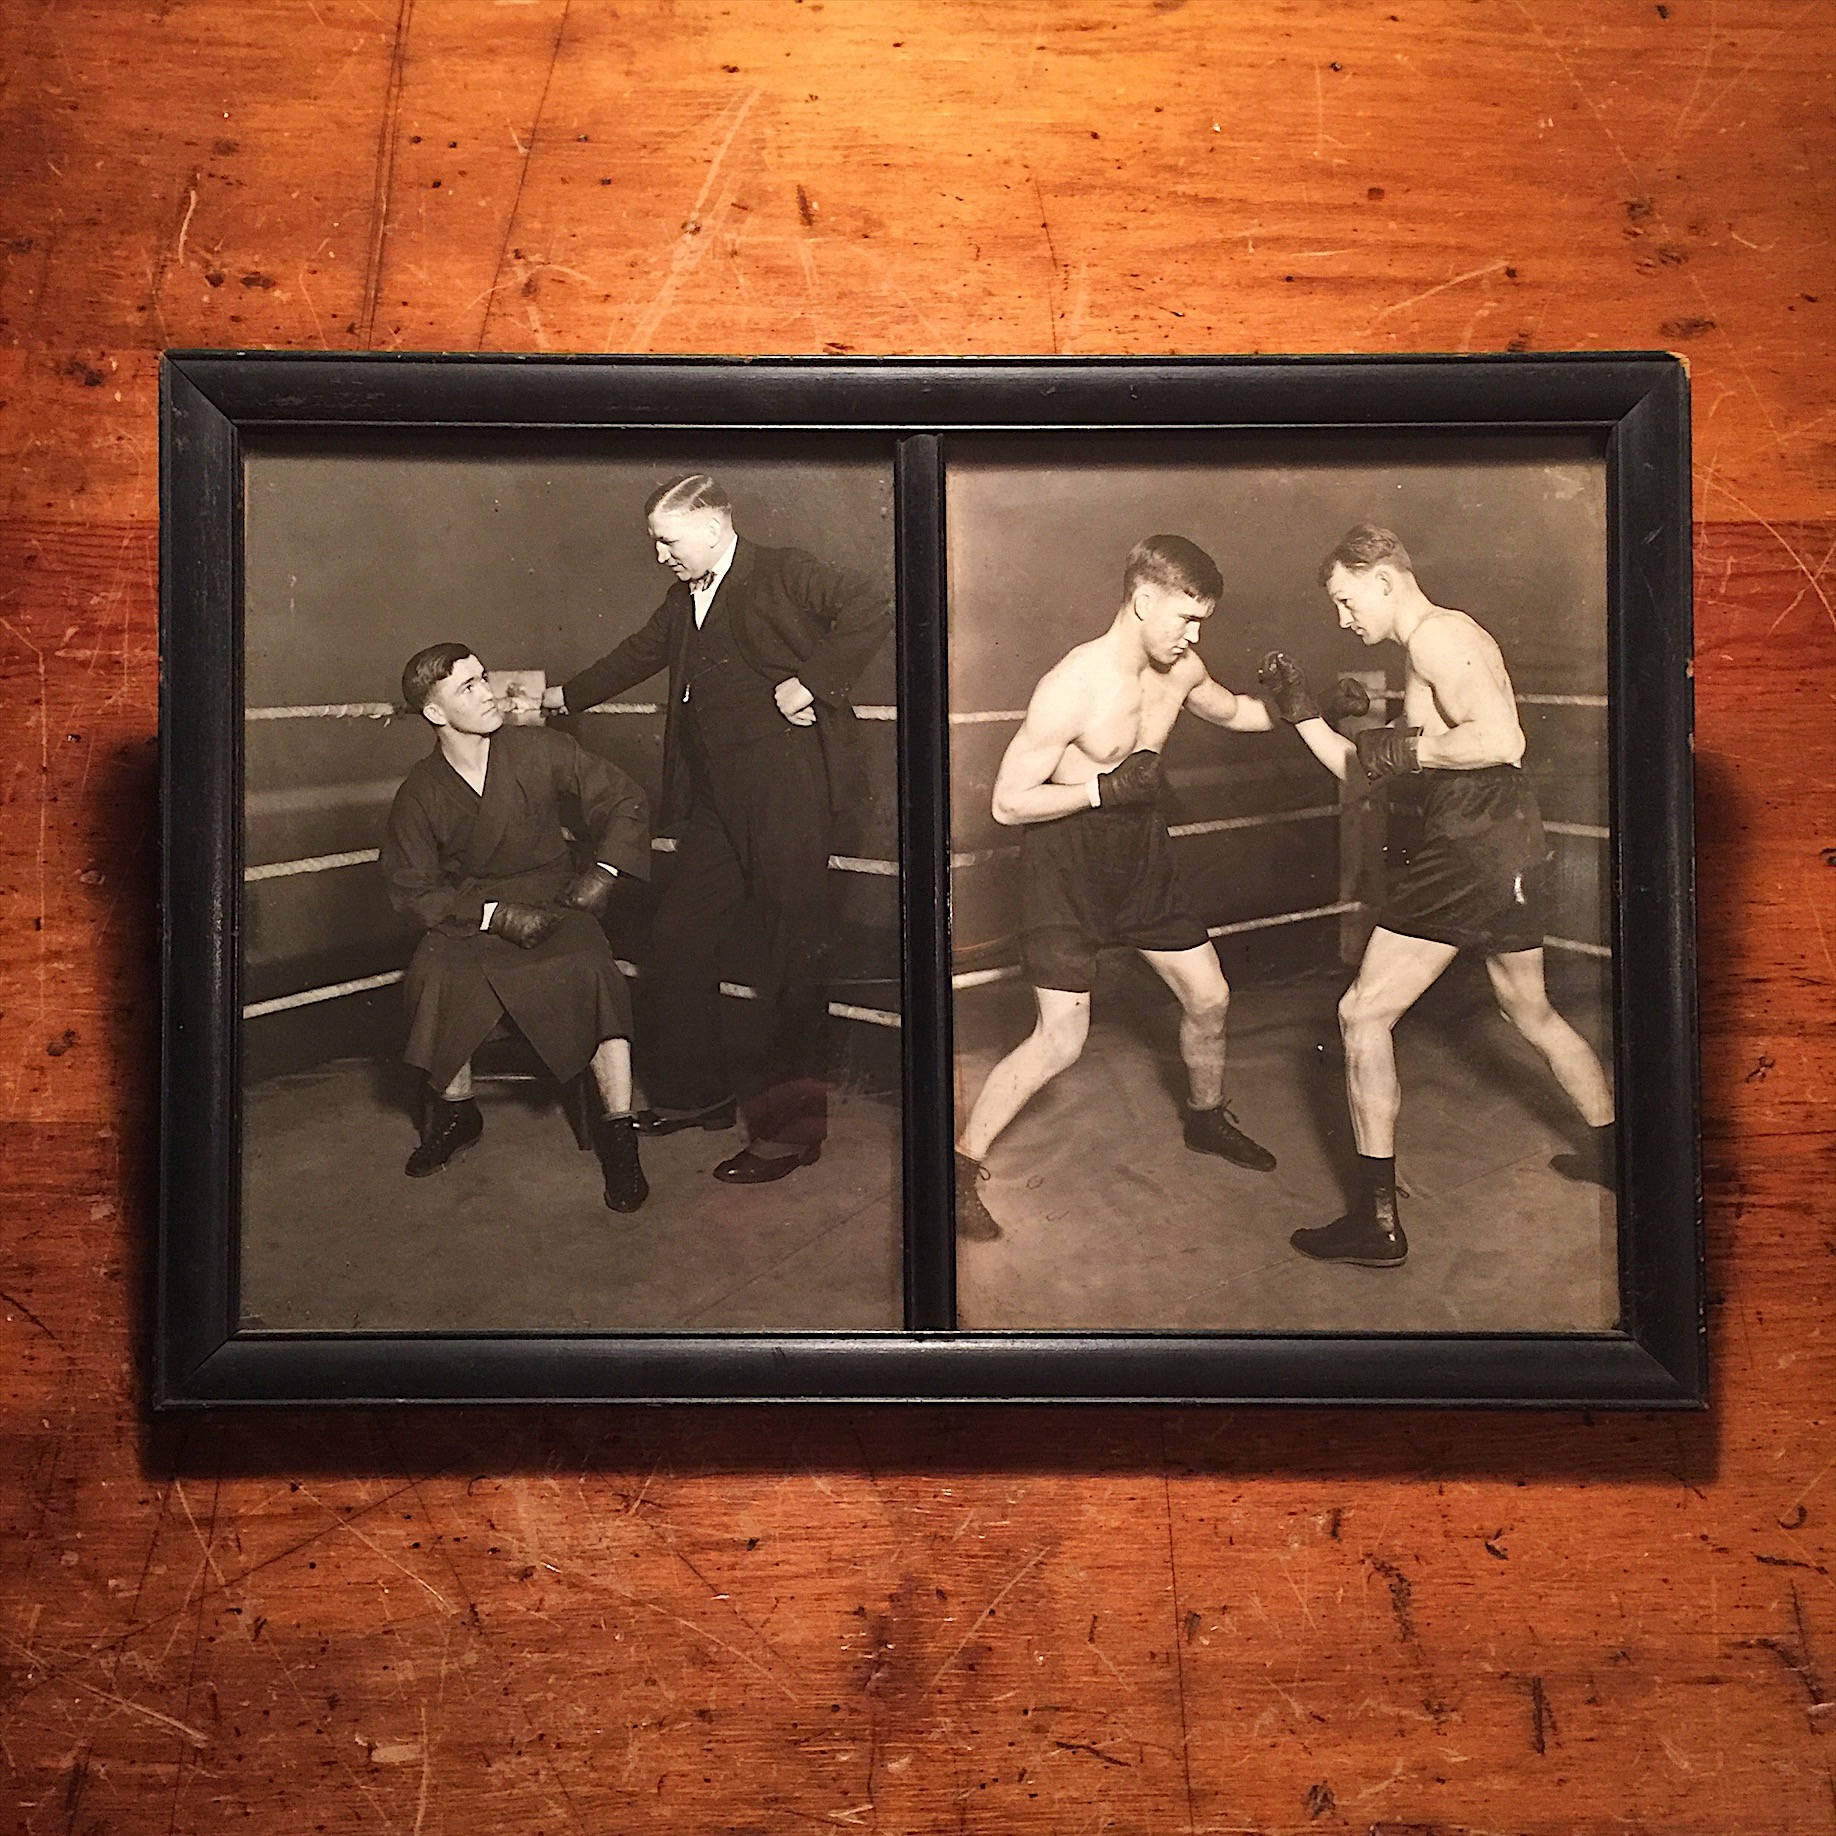 Boxing Photography Display 1920s - St. Paul Boxing History - Boxing Memorabilia - Boxer Estate - Sparring -Framed Boxing Photos